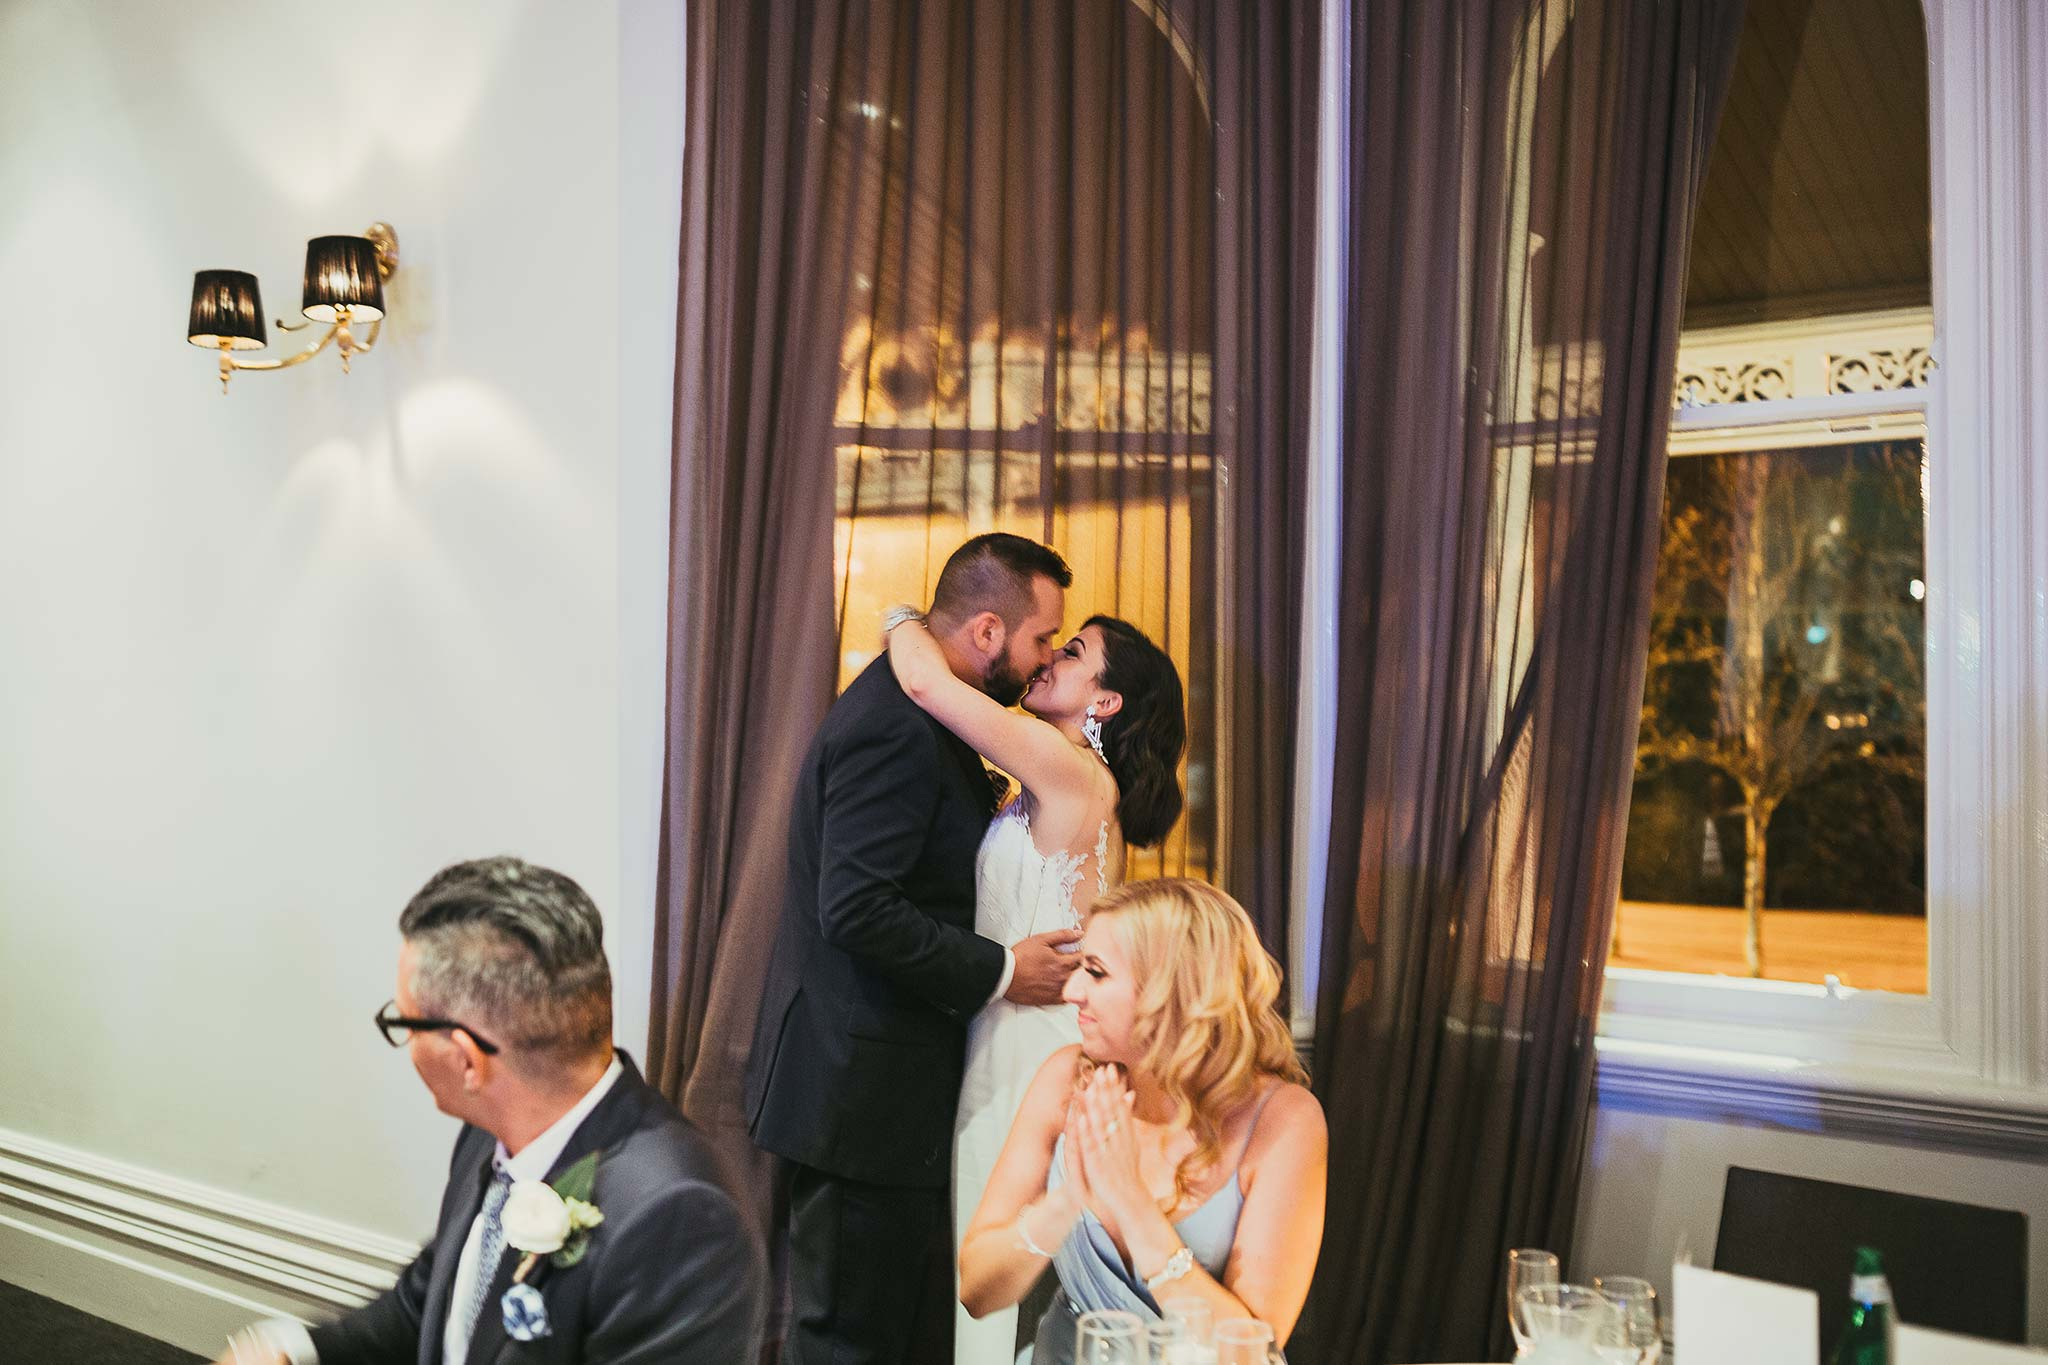 quat-quatta-night-wedding-reception-speeches-kiss